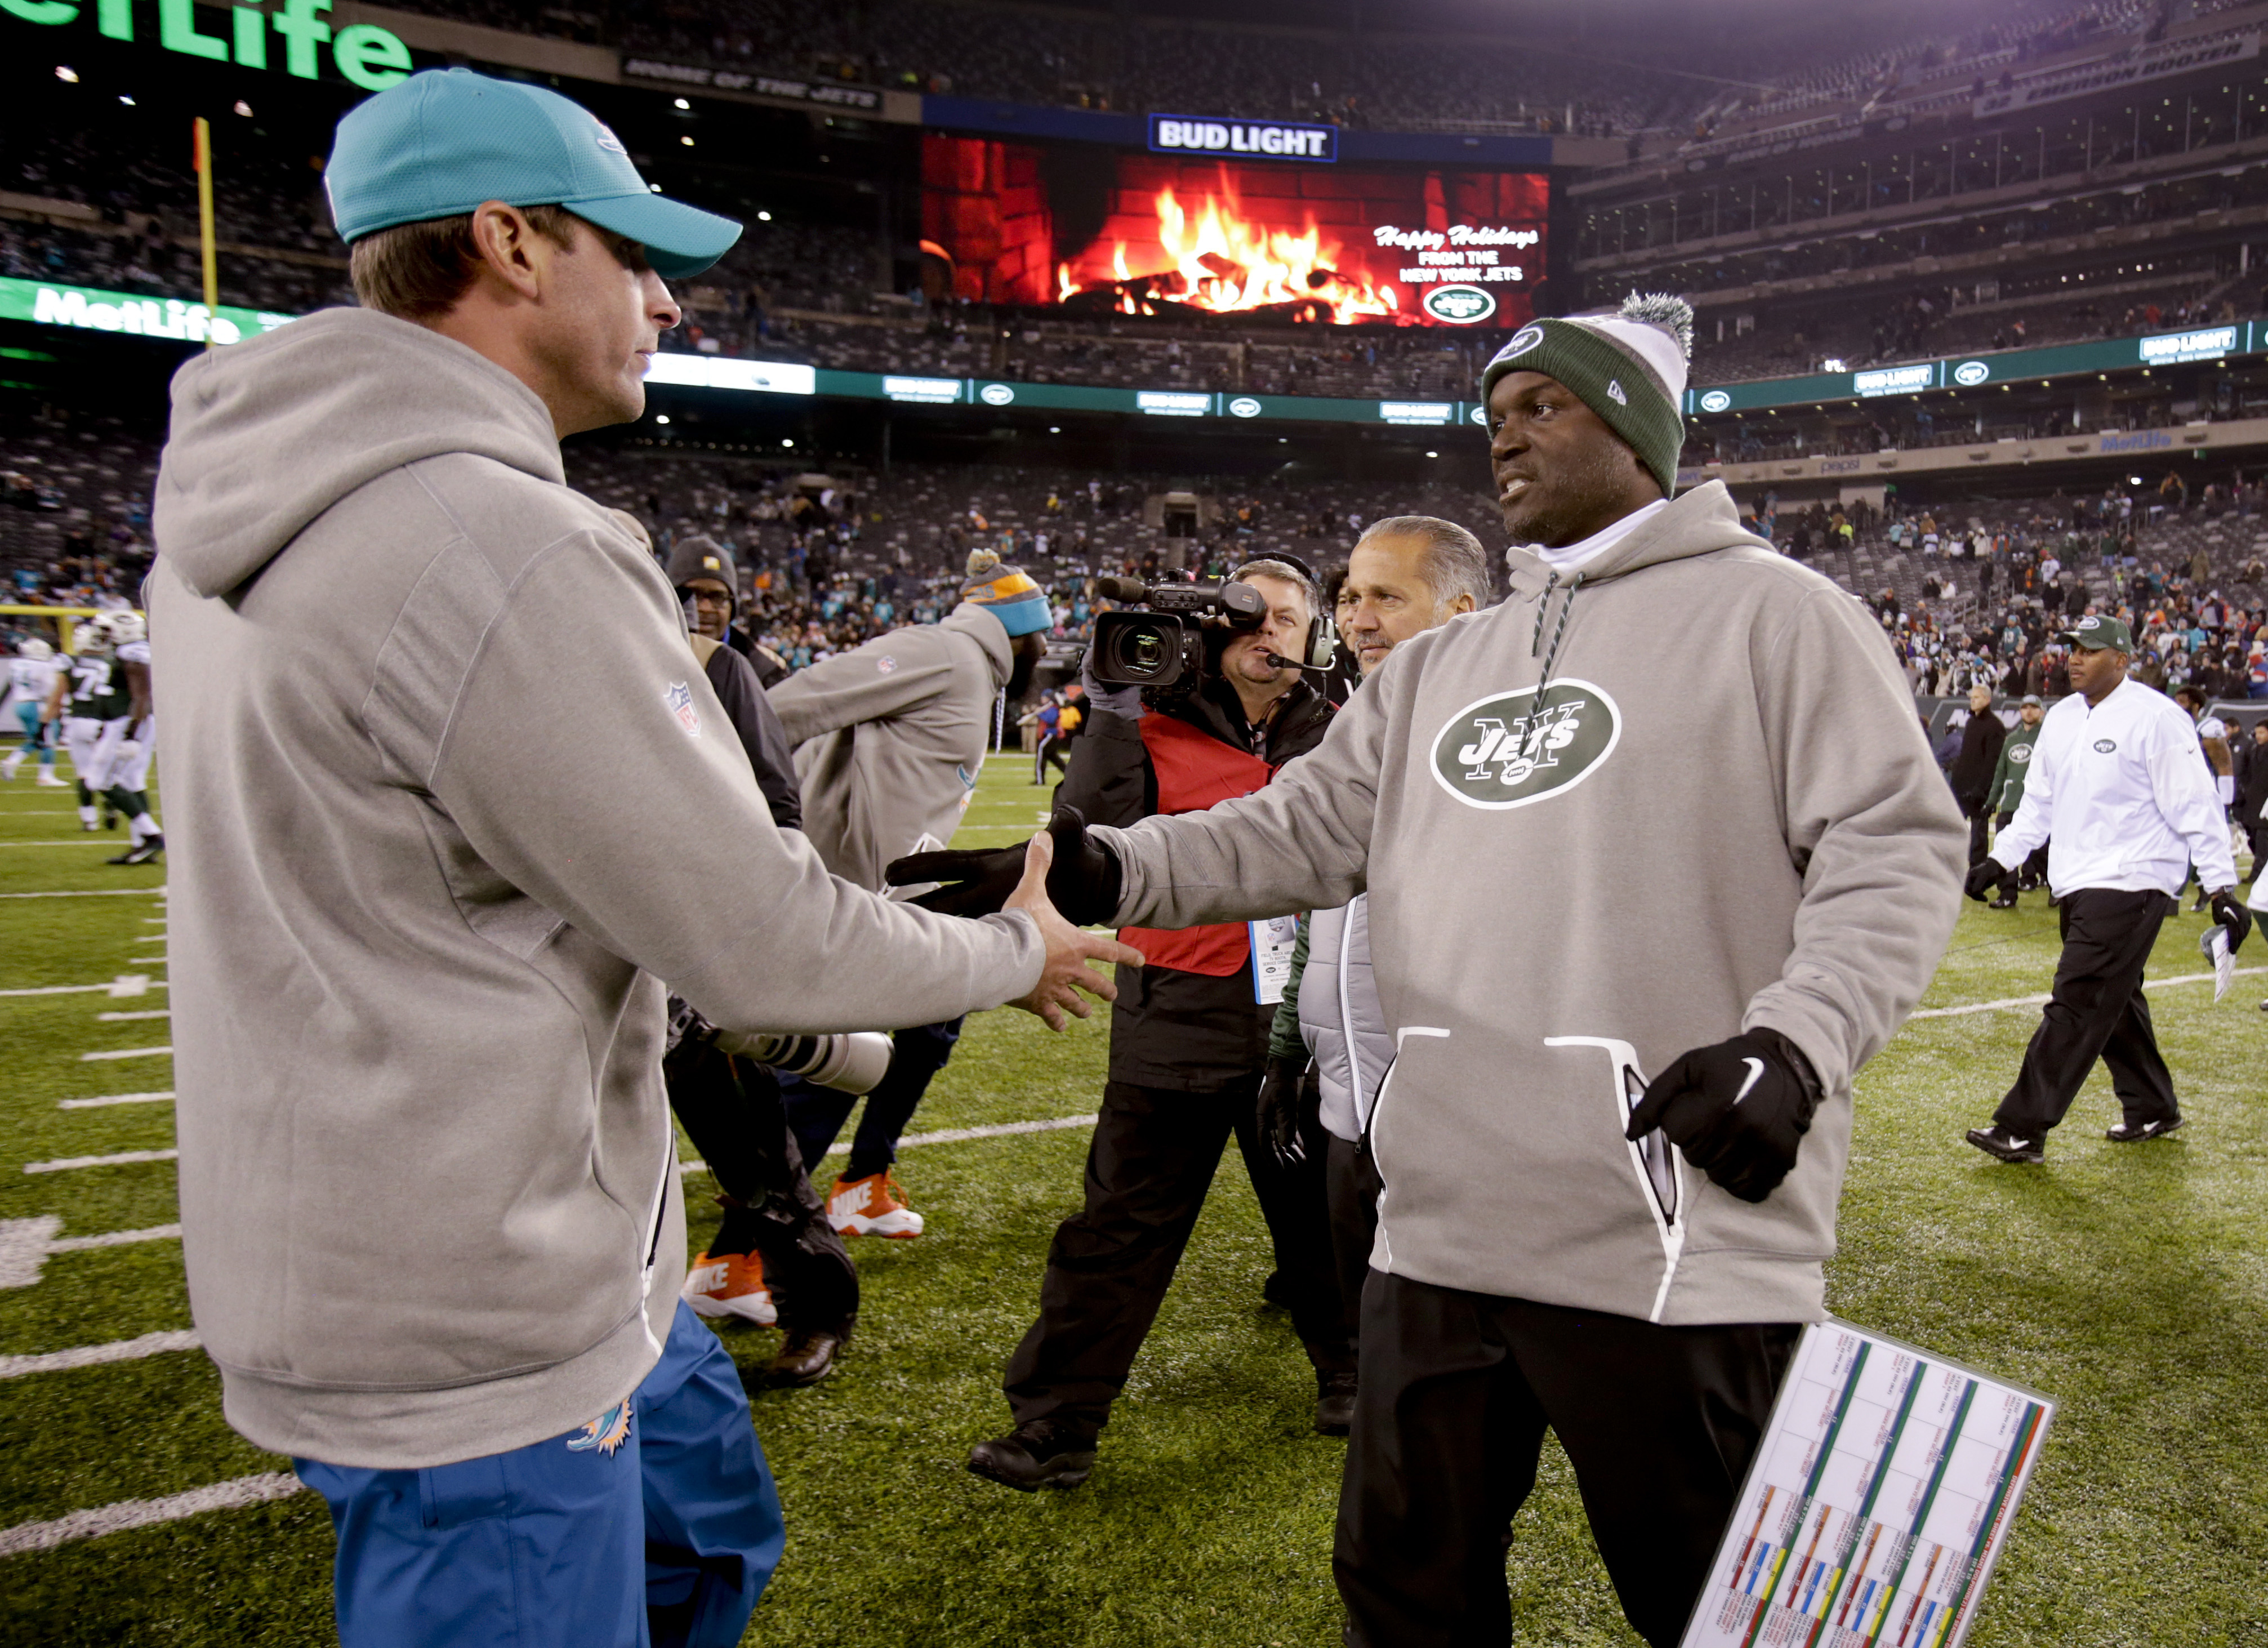 New York Jets head coach Todd Bowles, right, greets Miami Dolphins head coach Adam Gase at mid field after an NFL football game, Saturday, Dec. 17, 2016, in East Rutherford, N.J. The Dolphins won 34-13. (AP Photo/Adam Hunger)